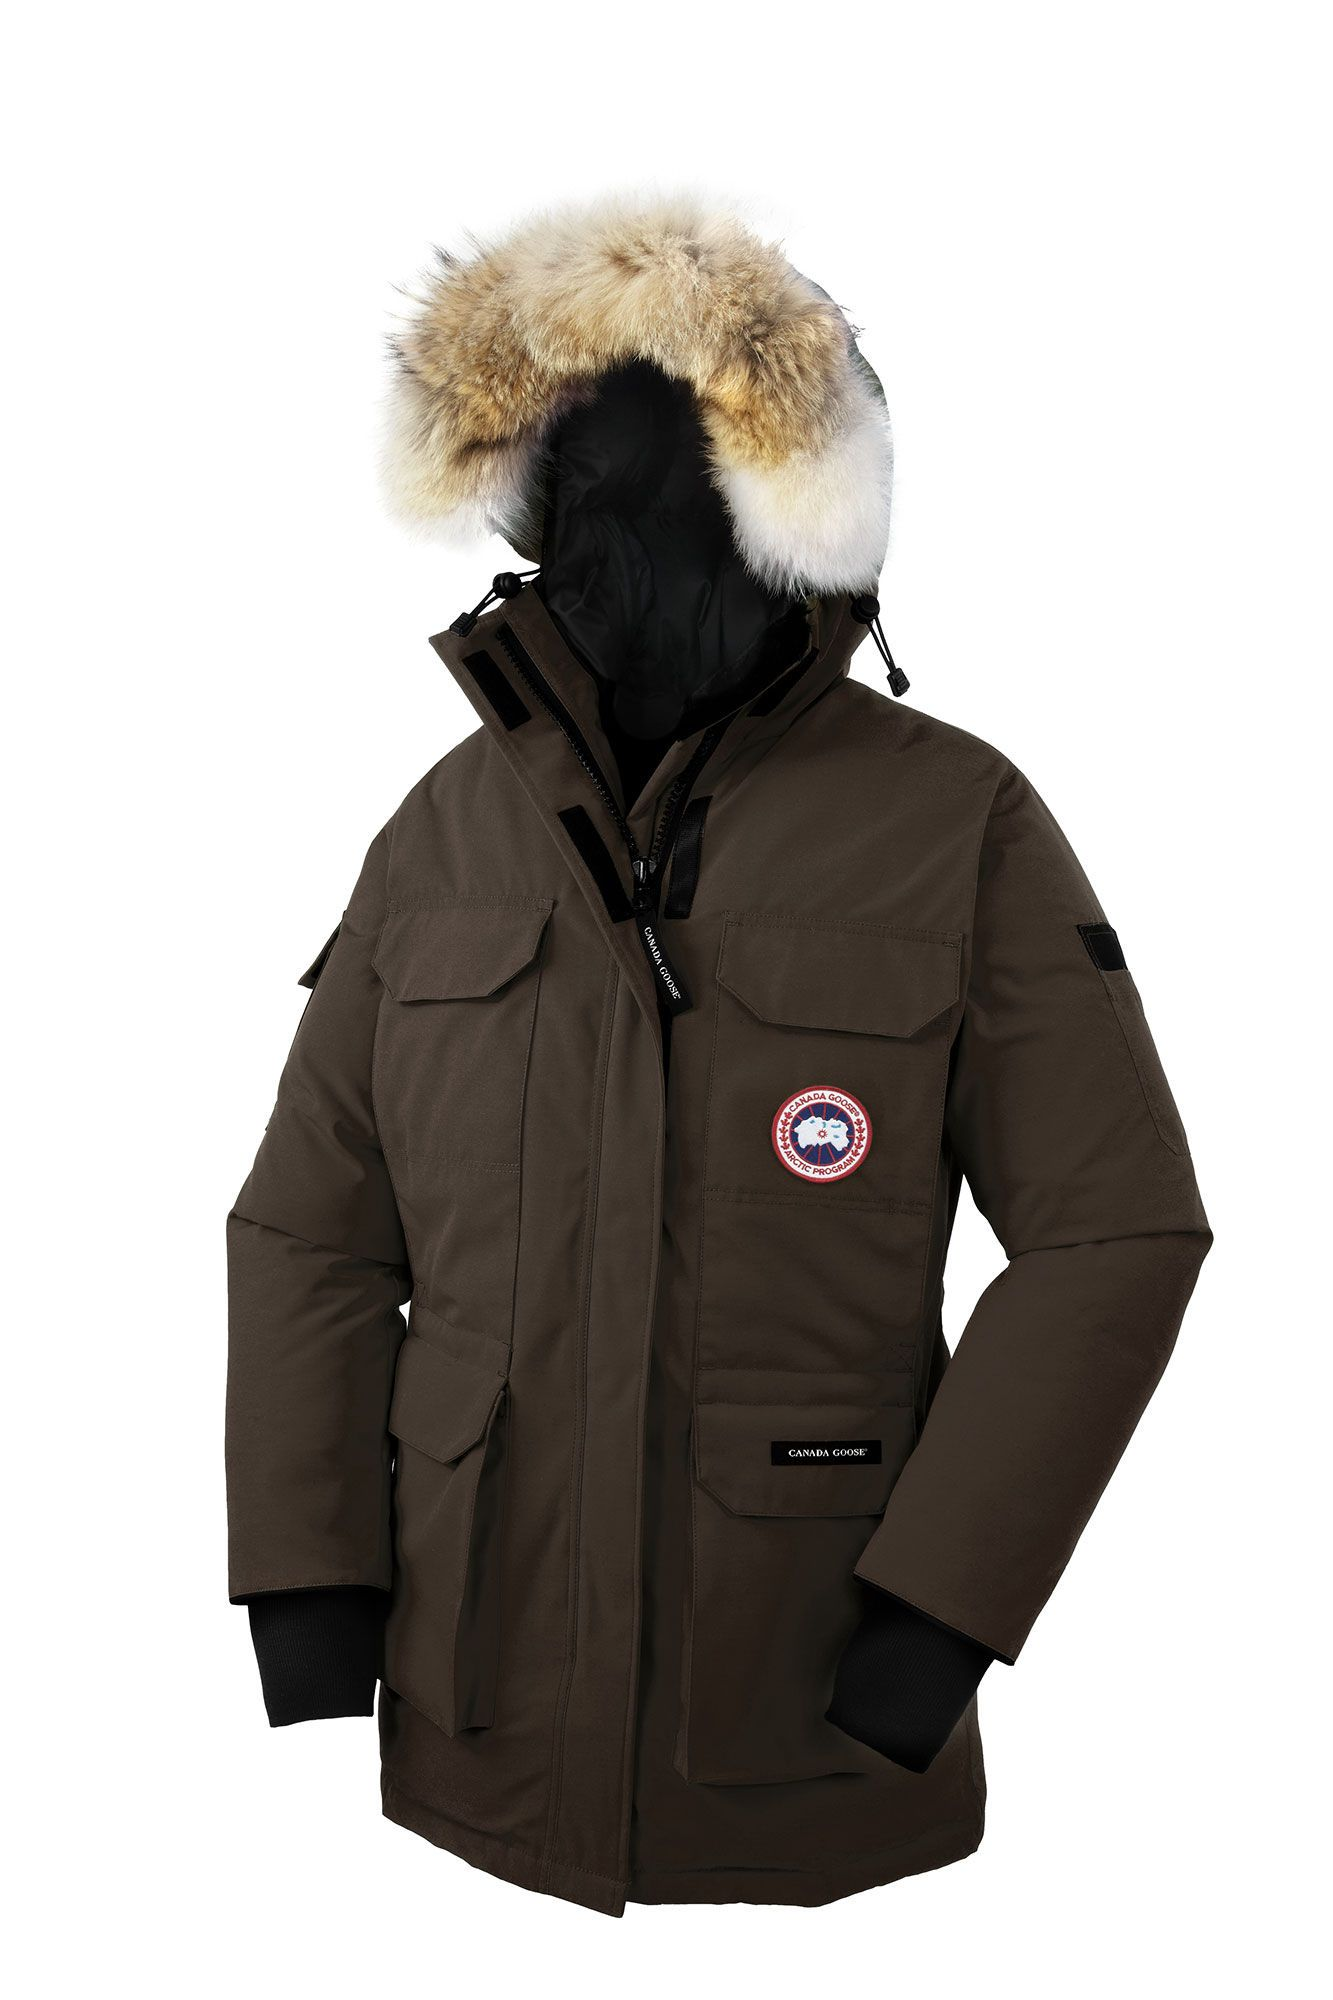 Expedition Parka Canada Goose Expedition Parka Canada Goose Jackets Canada Goose Victoria Parka